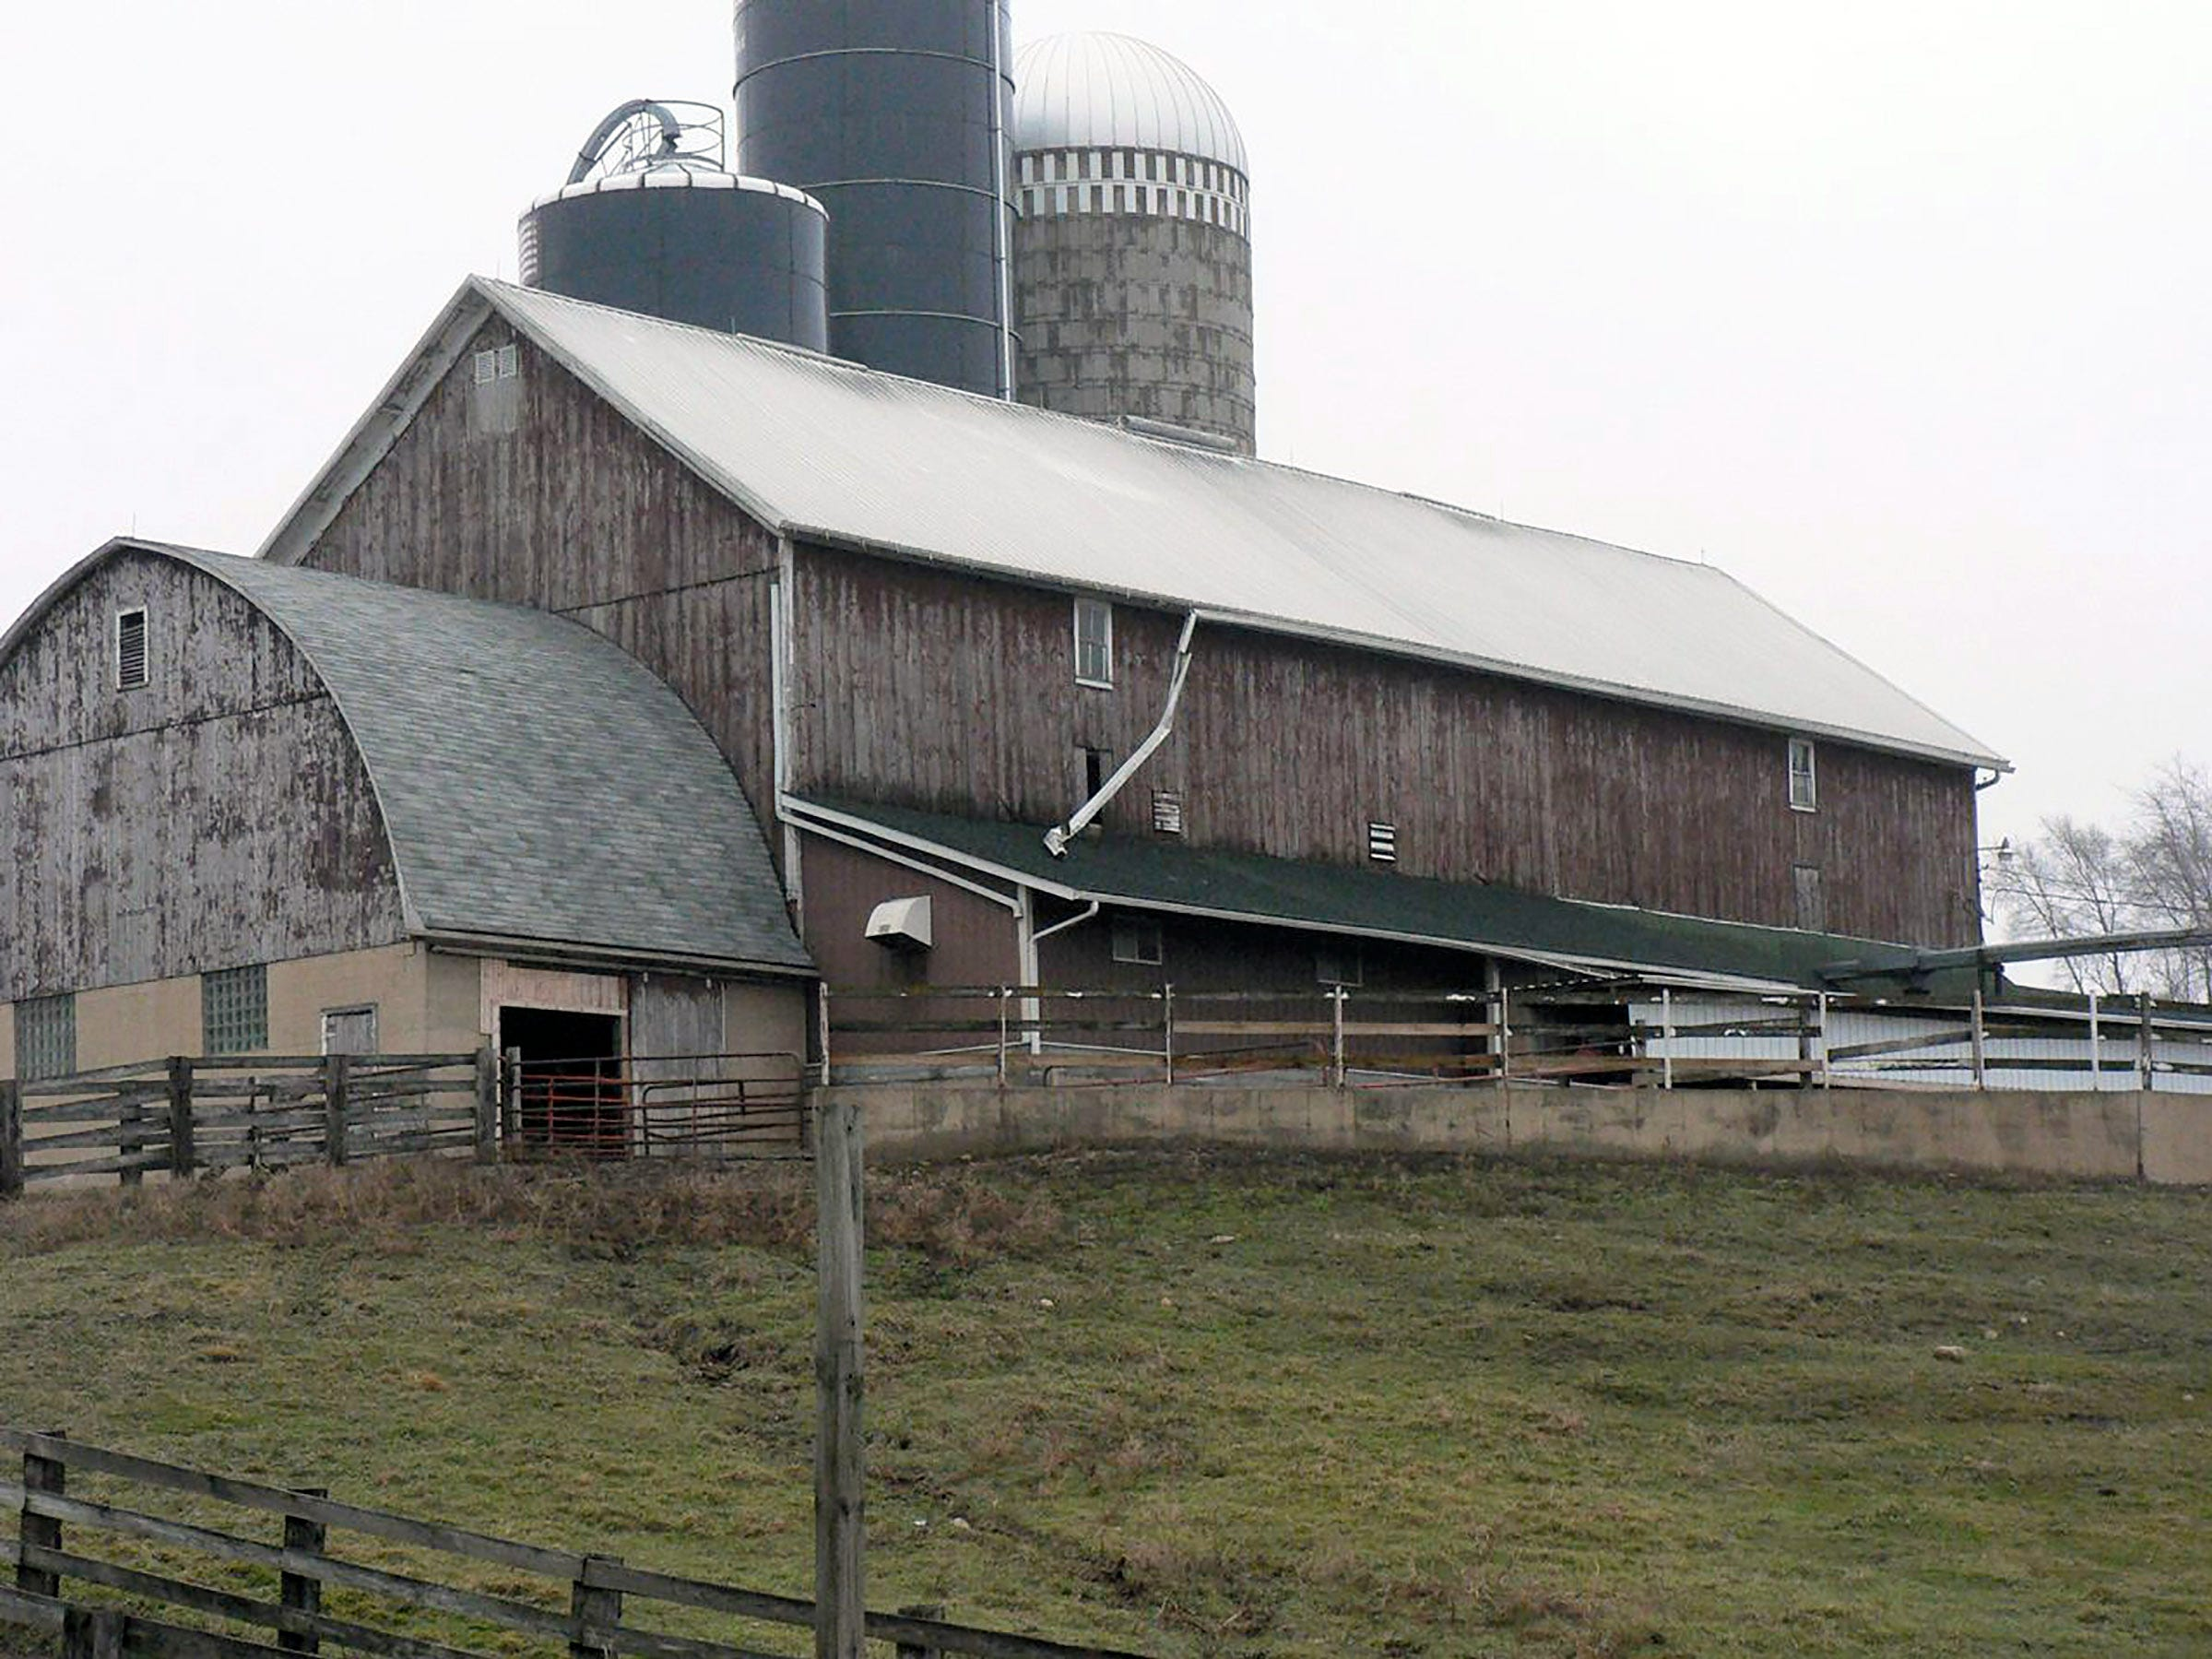 The additions to many barns denote the changes made over the years.